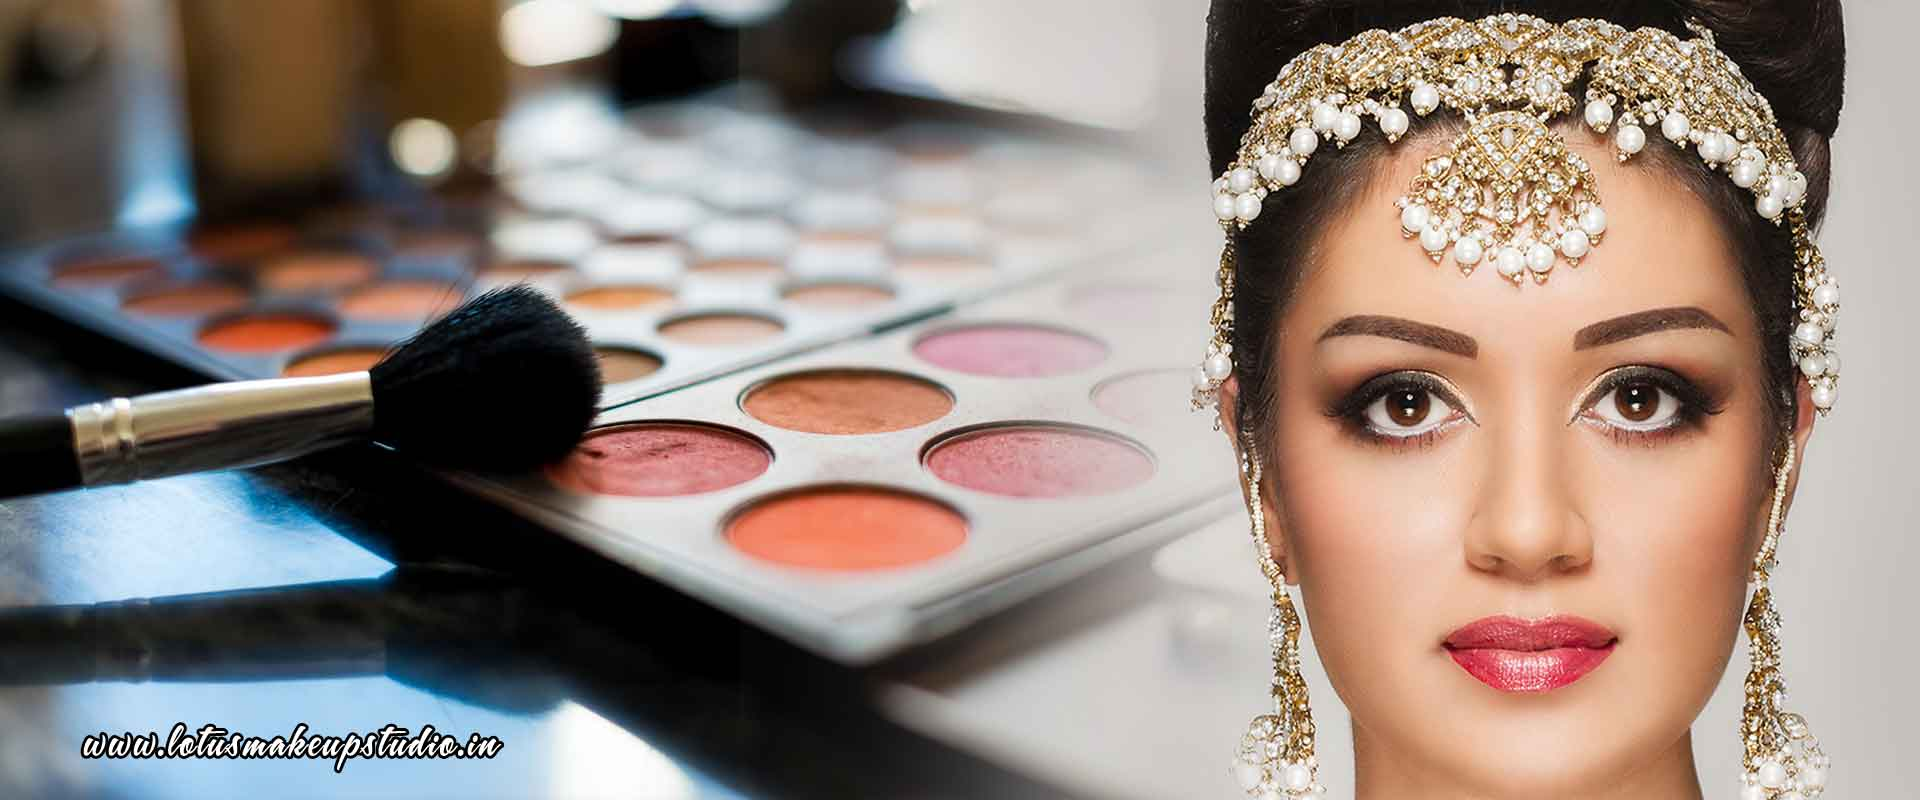 Women Beauty Parlour & Salon Ladies Make-up Bridal Makeup Studio in Ludhaina Punjab